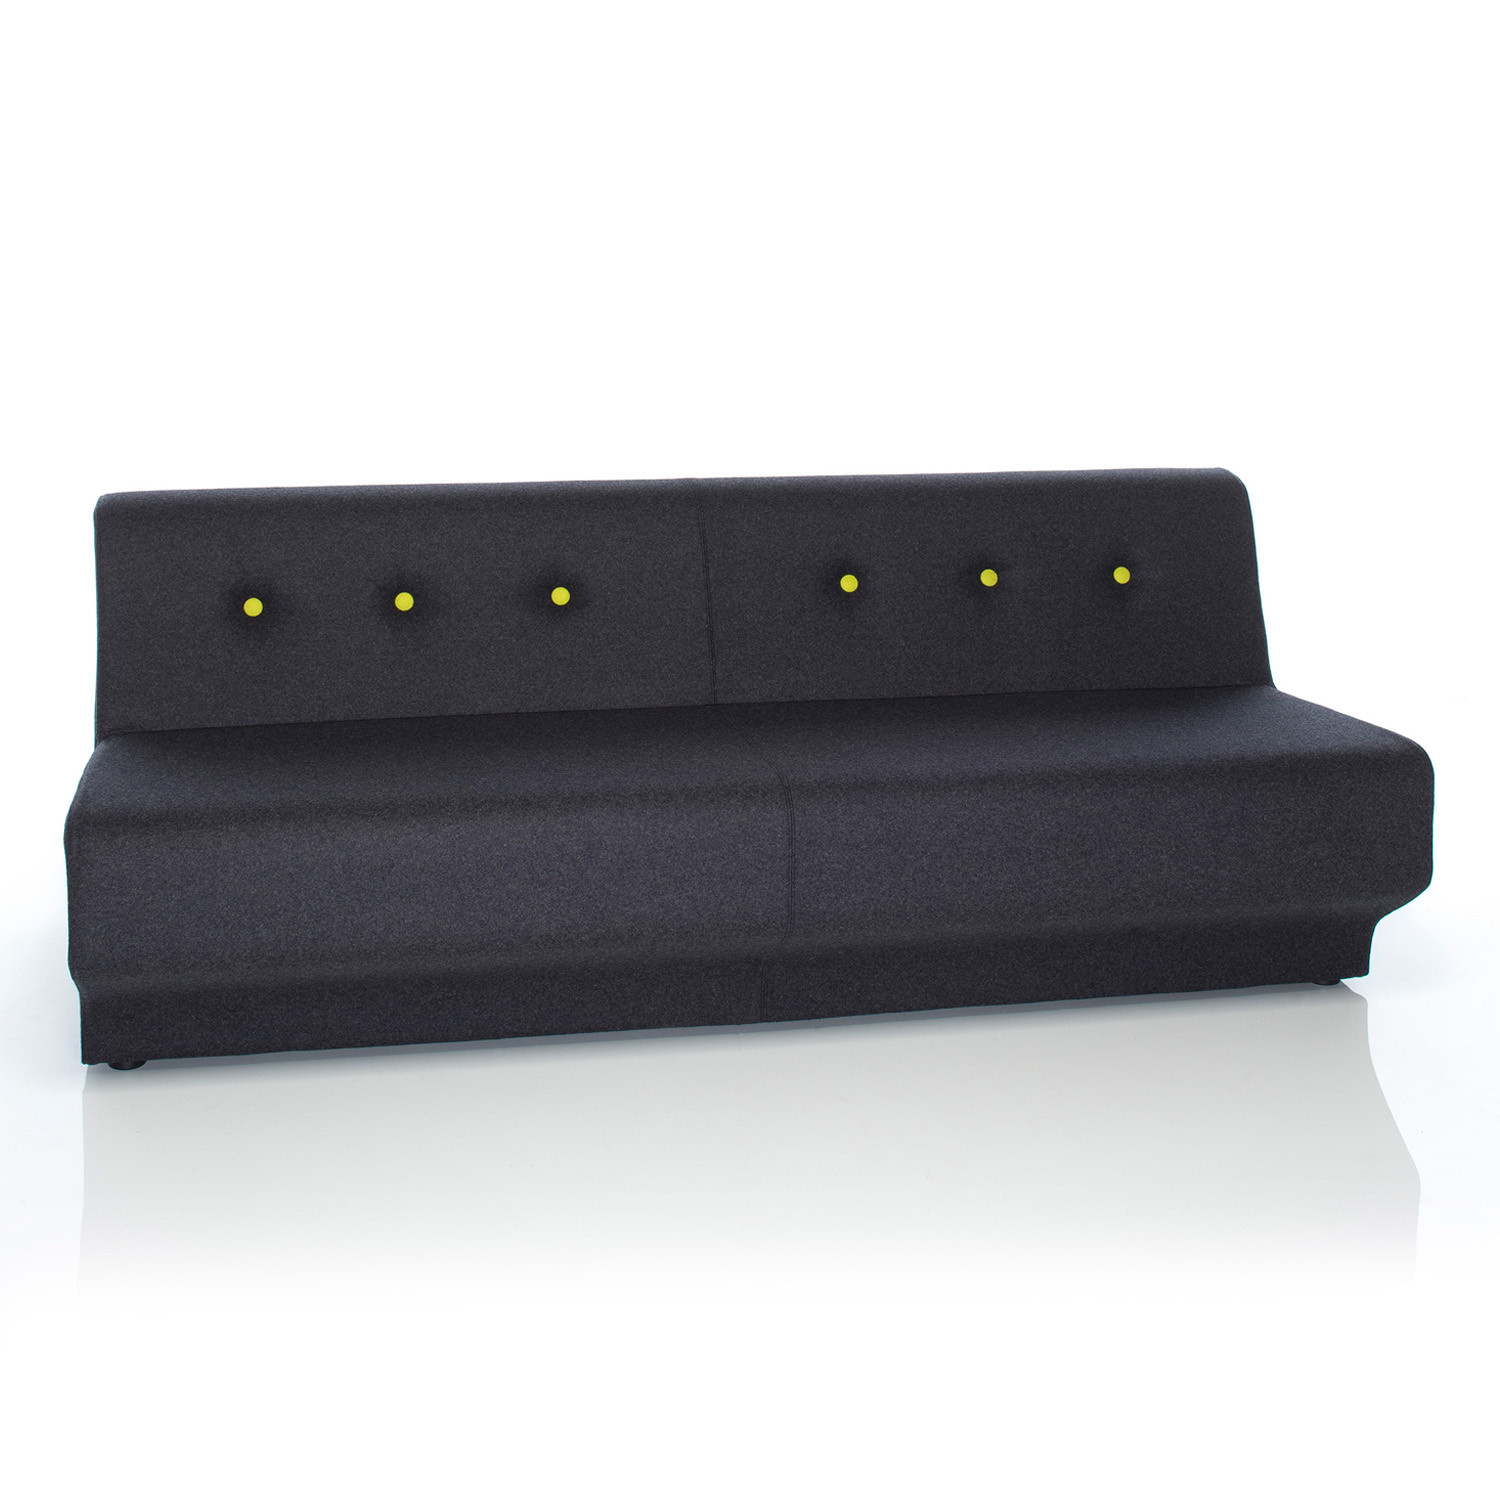 Campus Orangebox Sofa